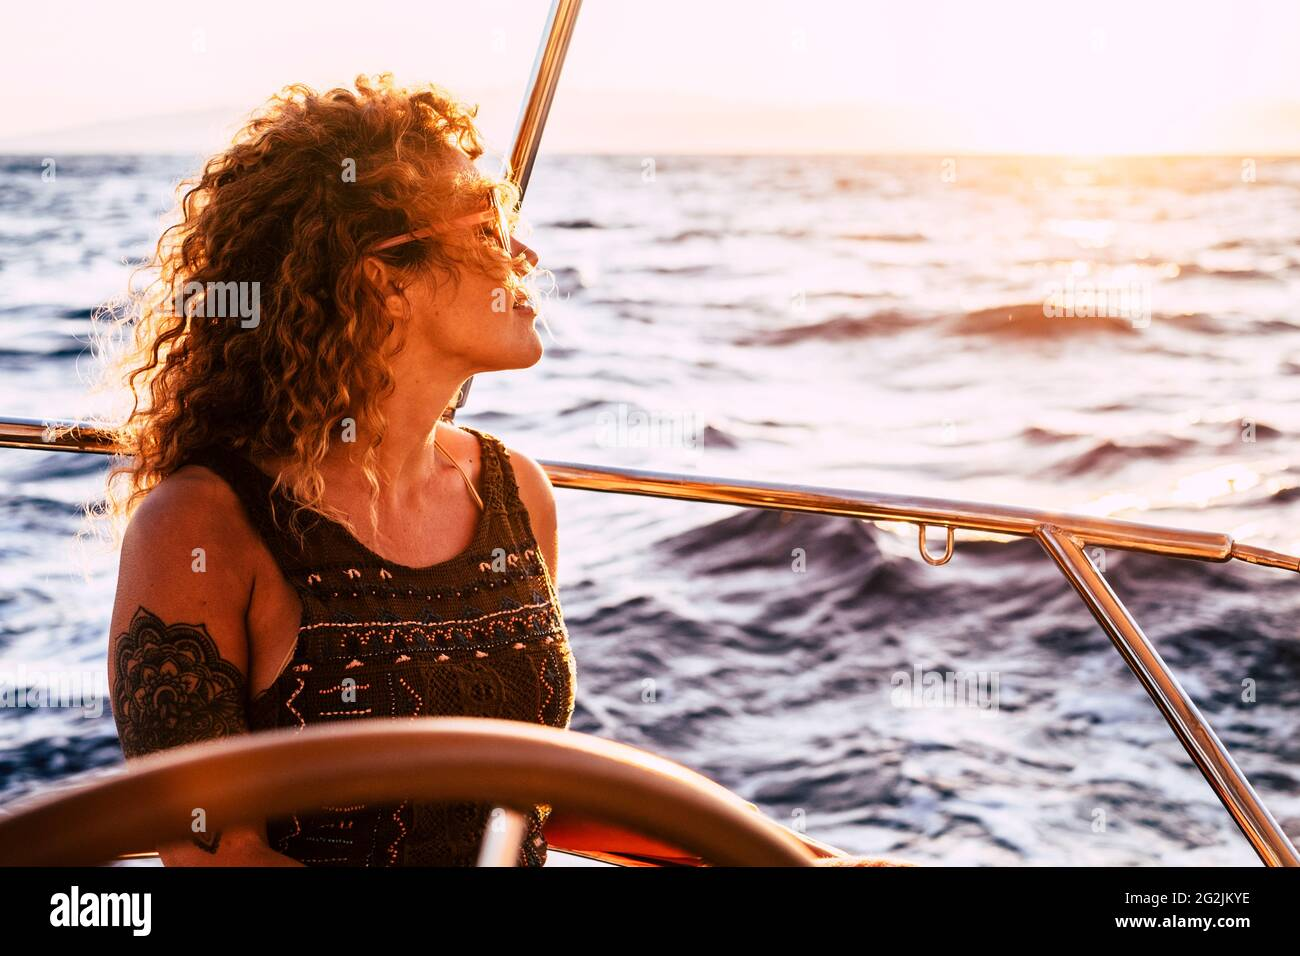 Adult rich woman enjoy luxury lifestyle traveling on sailboat yacht for summer holiday vacation - pretty female people outdoor freedom with ocean sea around in the sunset Stock Photo